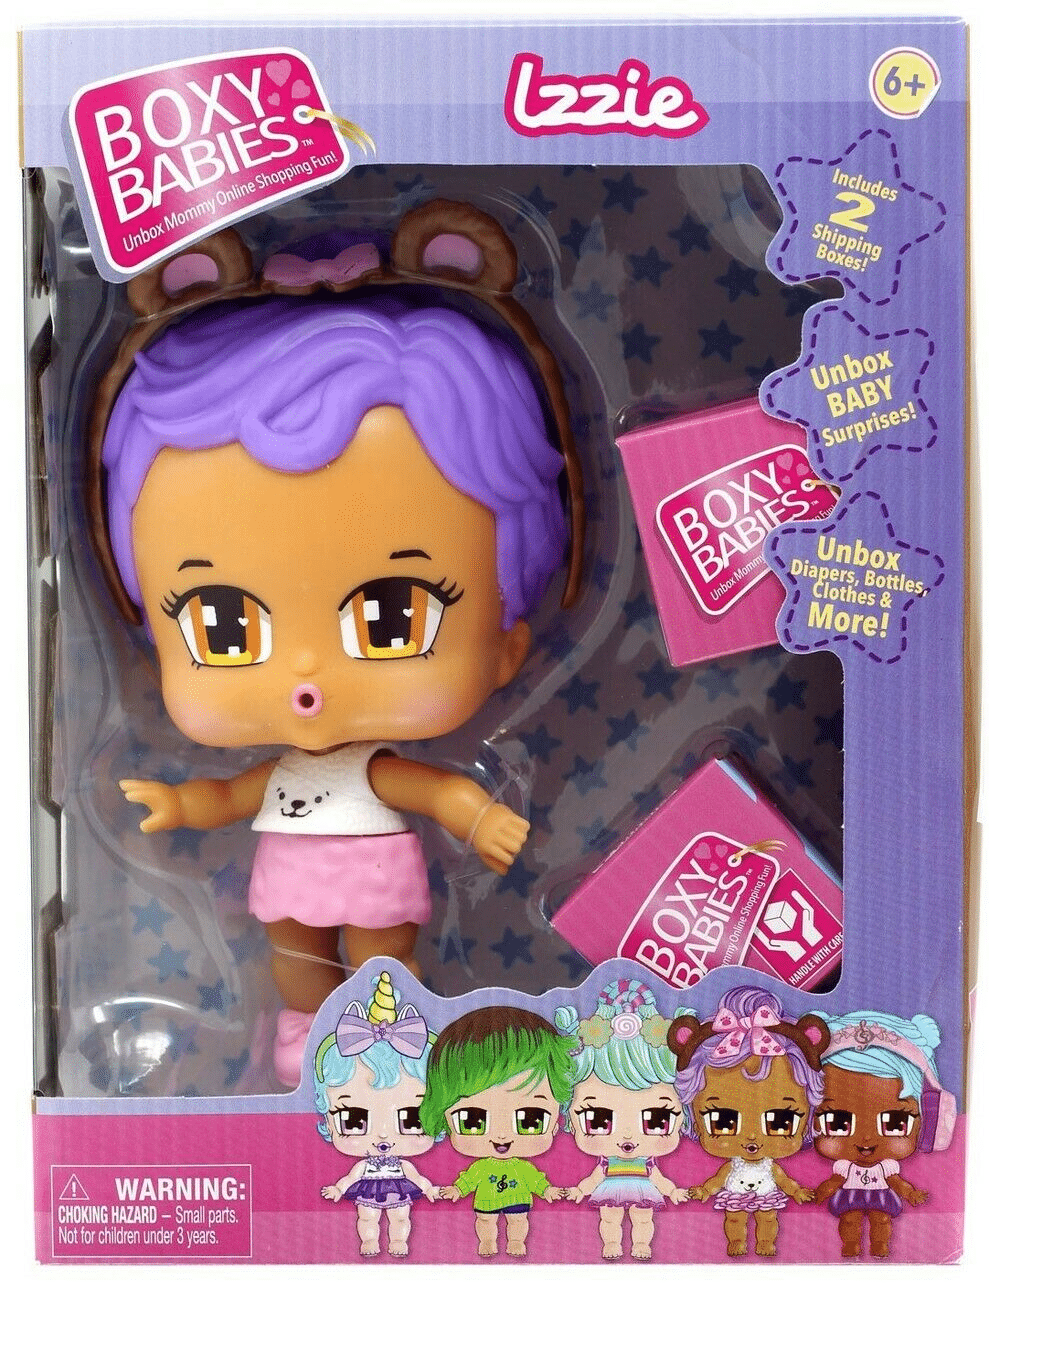 Boxy Babies - Izzie. Baby Izzie loves to snuggle and cuddle just like a little bear! Mommy shops online for lots of furry cuddle accessories for Baby Izzie - from a bear bottle to Bear tutus! Jays Sweet N Sour Life 2019 Holiday Gift Guide for Kids.